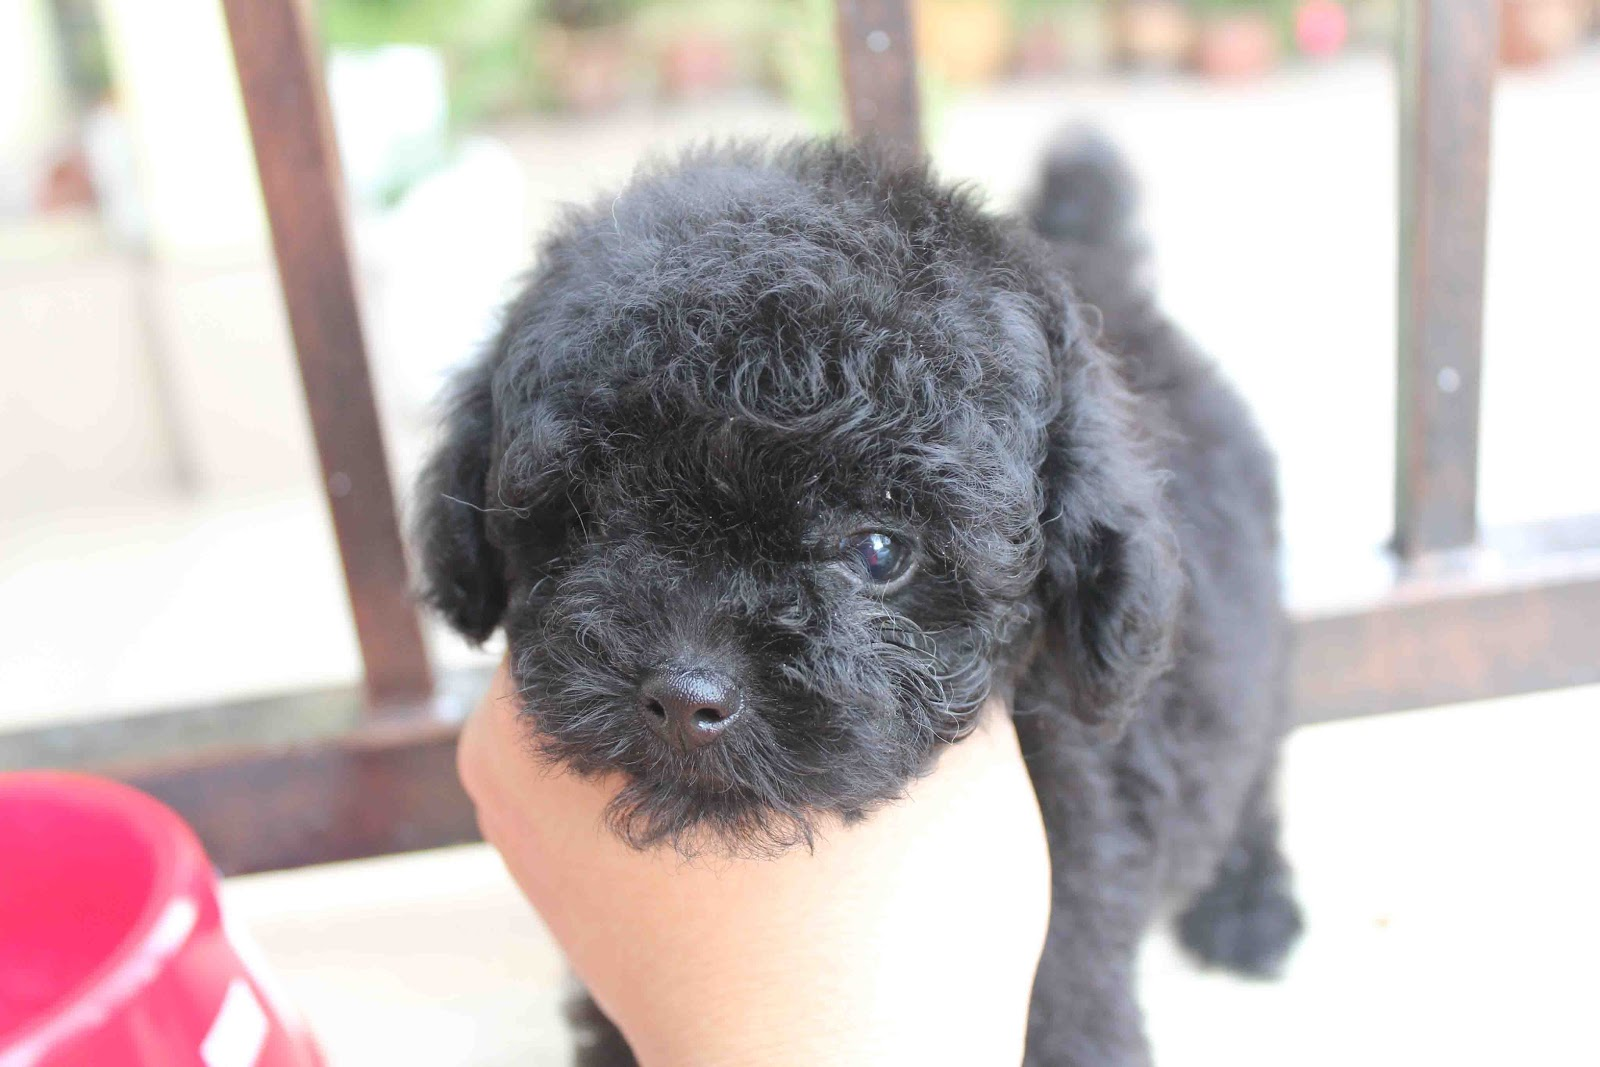 Black Teacup Poodle Full Grown Super black tiny toy poodle@